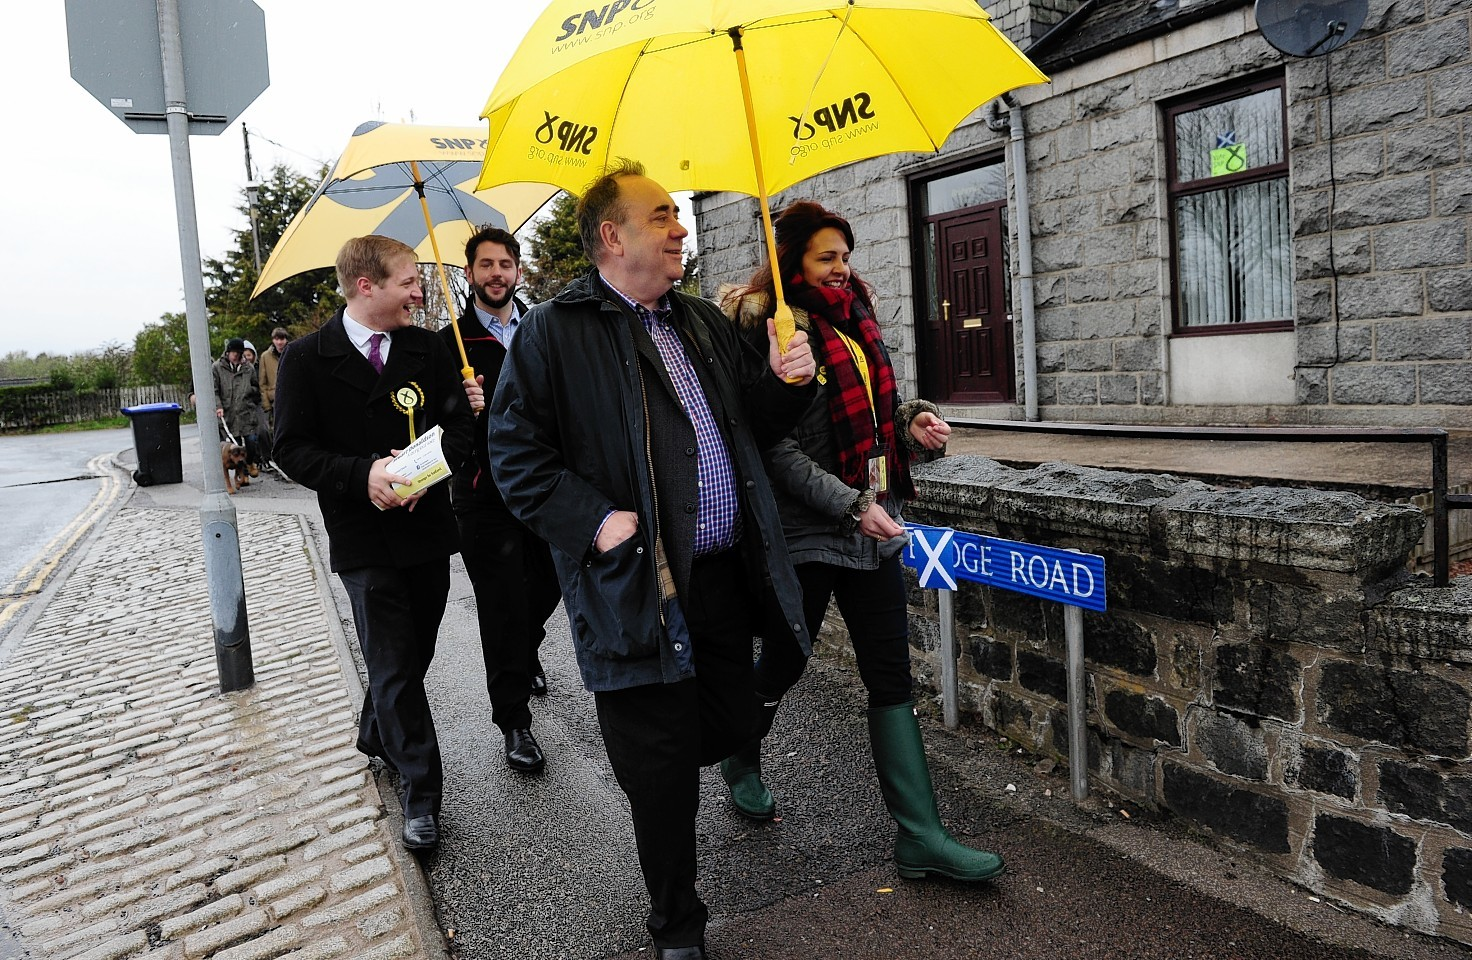 Alex Salmond and Stuart Donaldson out together on the streets campaigning in Kemnay